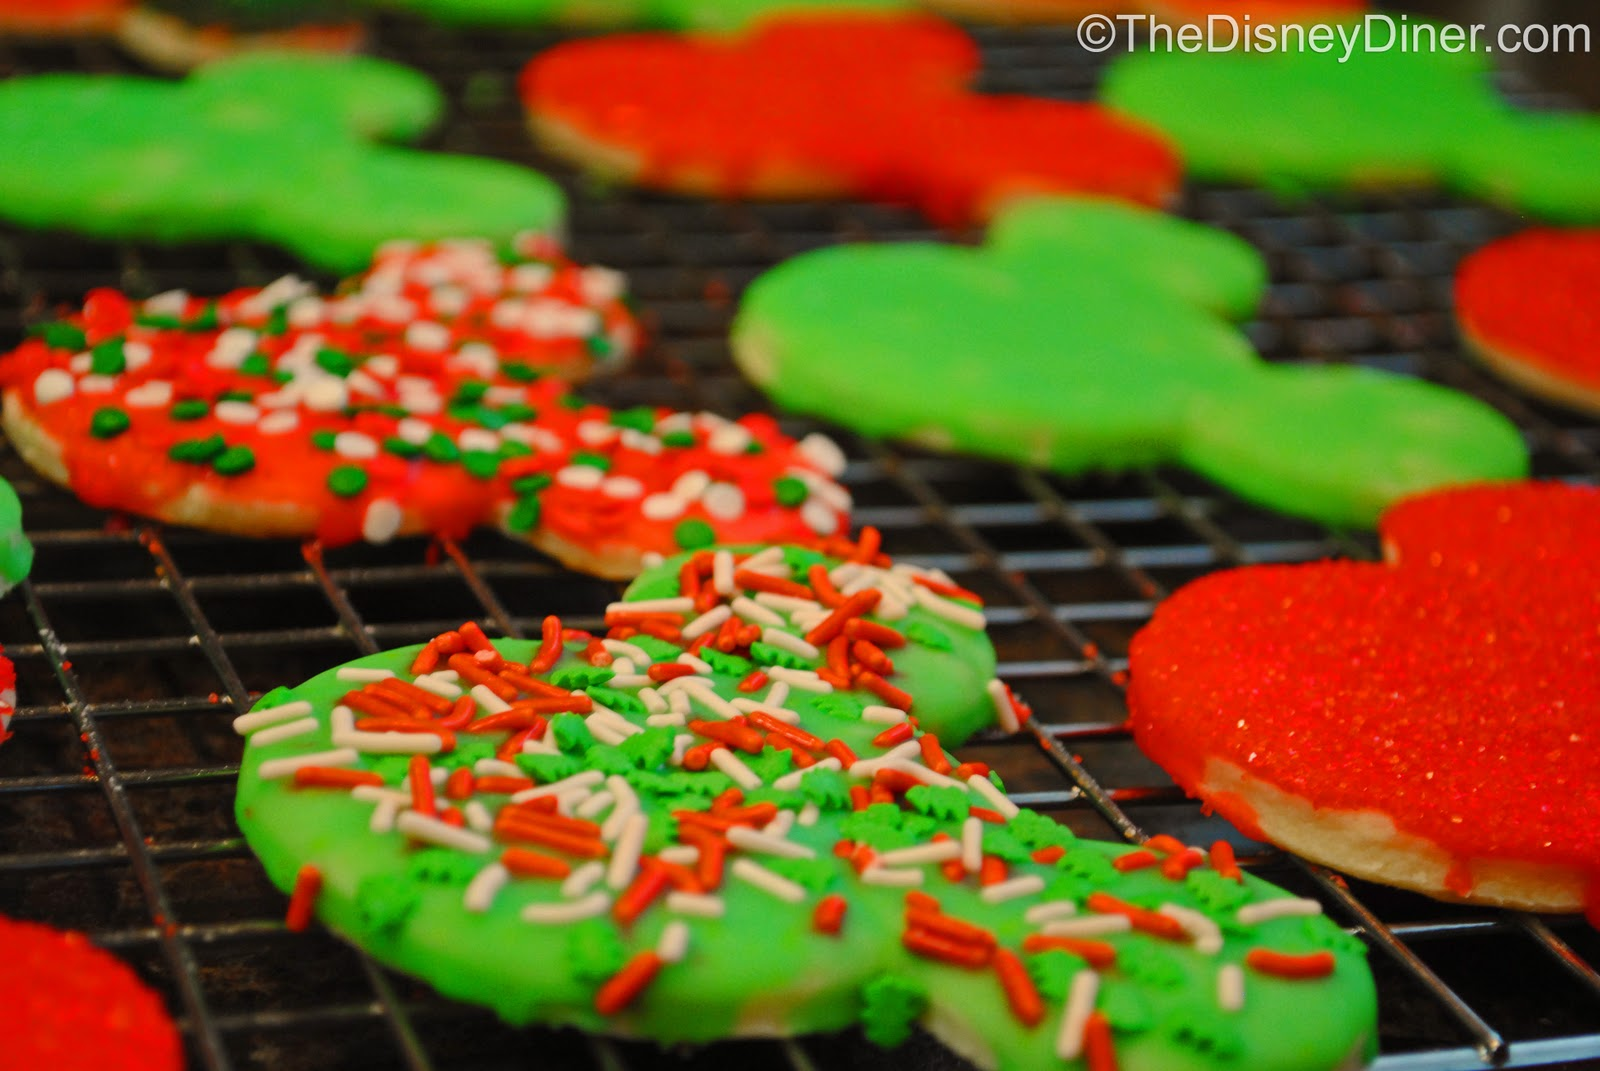 The Disney Diner Sugar Cookies